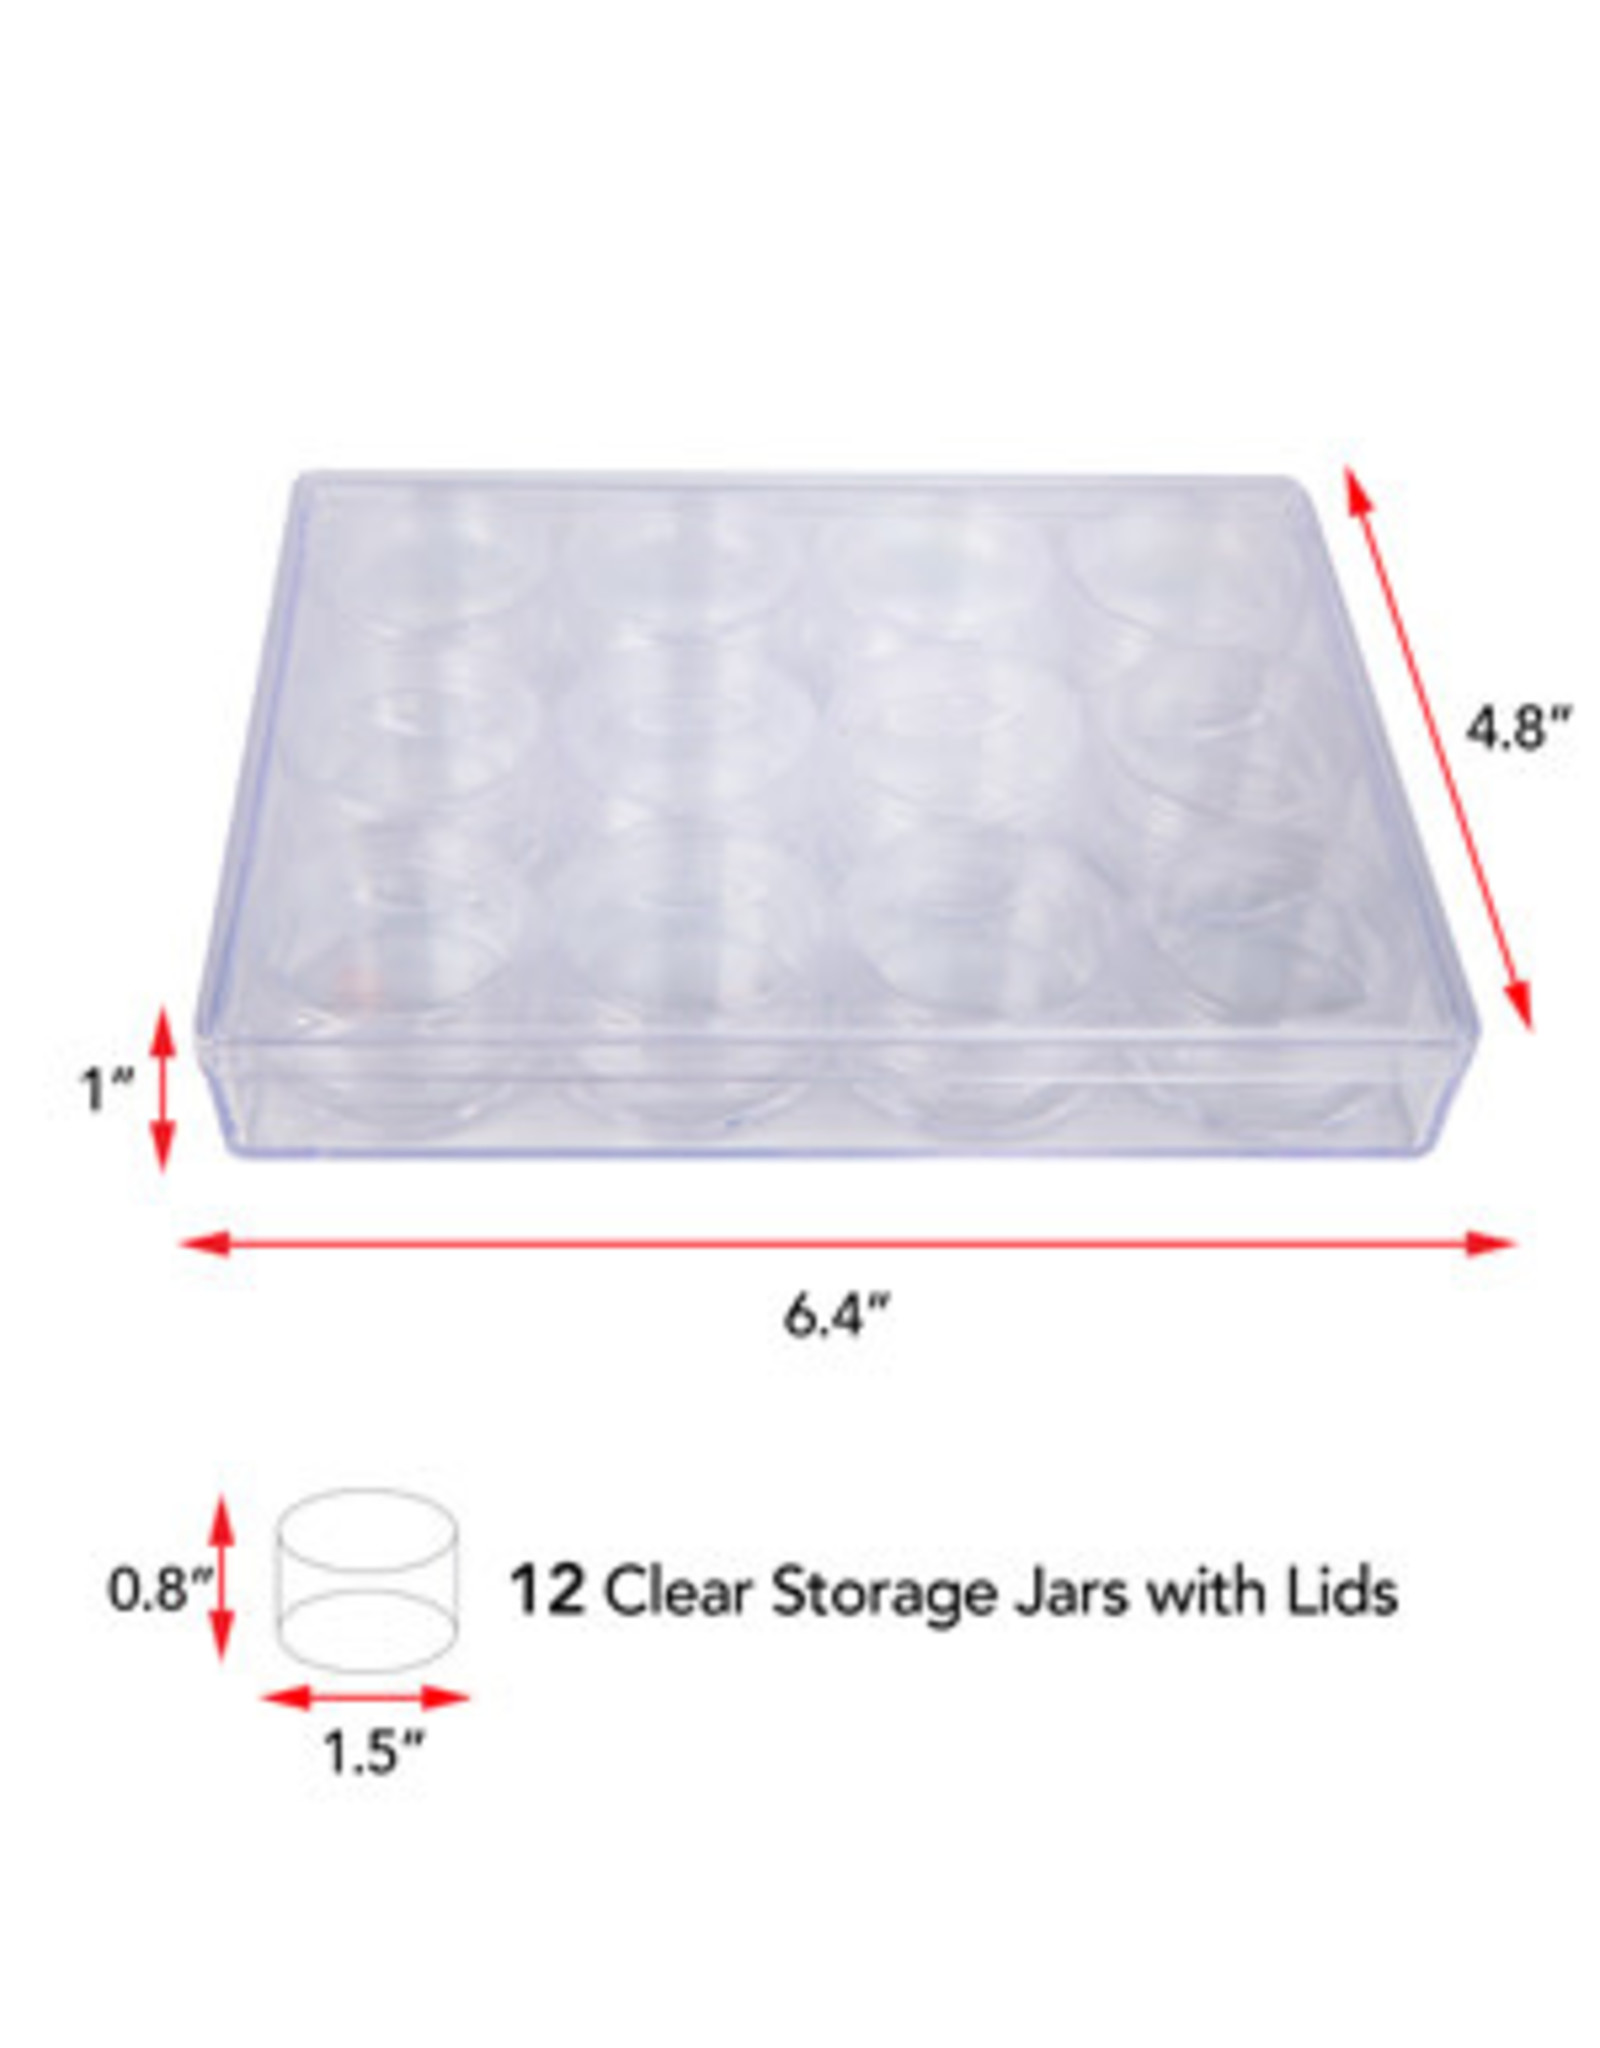 12 Clear Jar with Screw Lids  3.8x2cm in Box 16.2x12.2x2.5cm